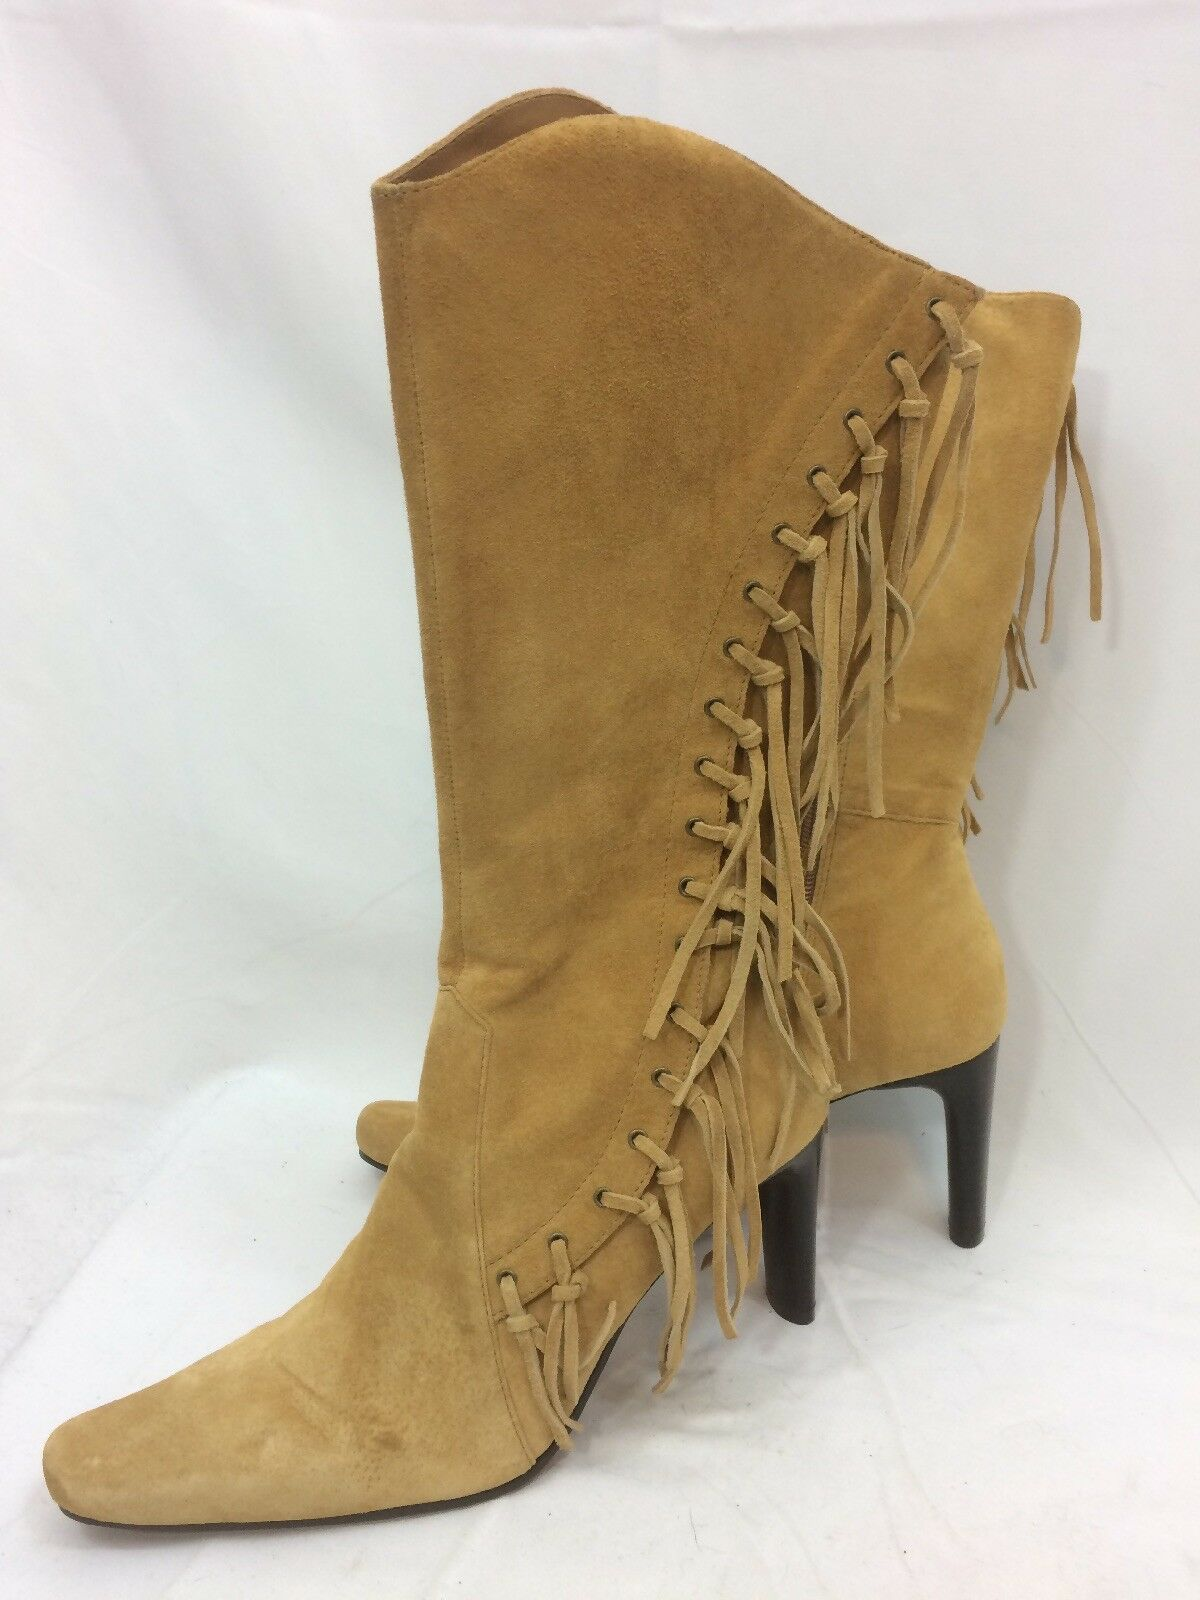 NEW MIxIT Wheat Suede Leather Fringed Side Sip Heeled Boots Sz.7M